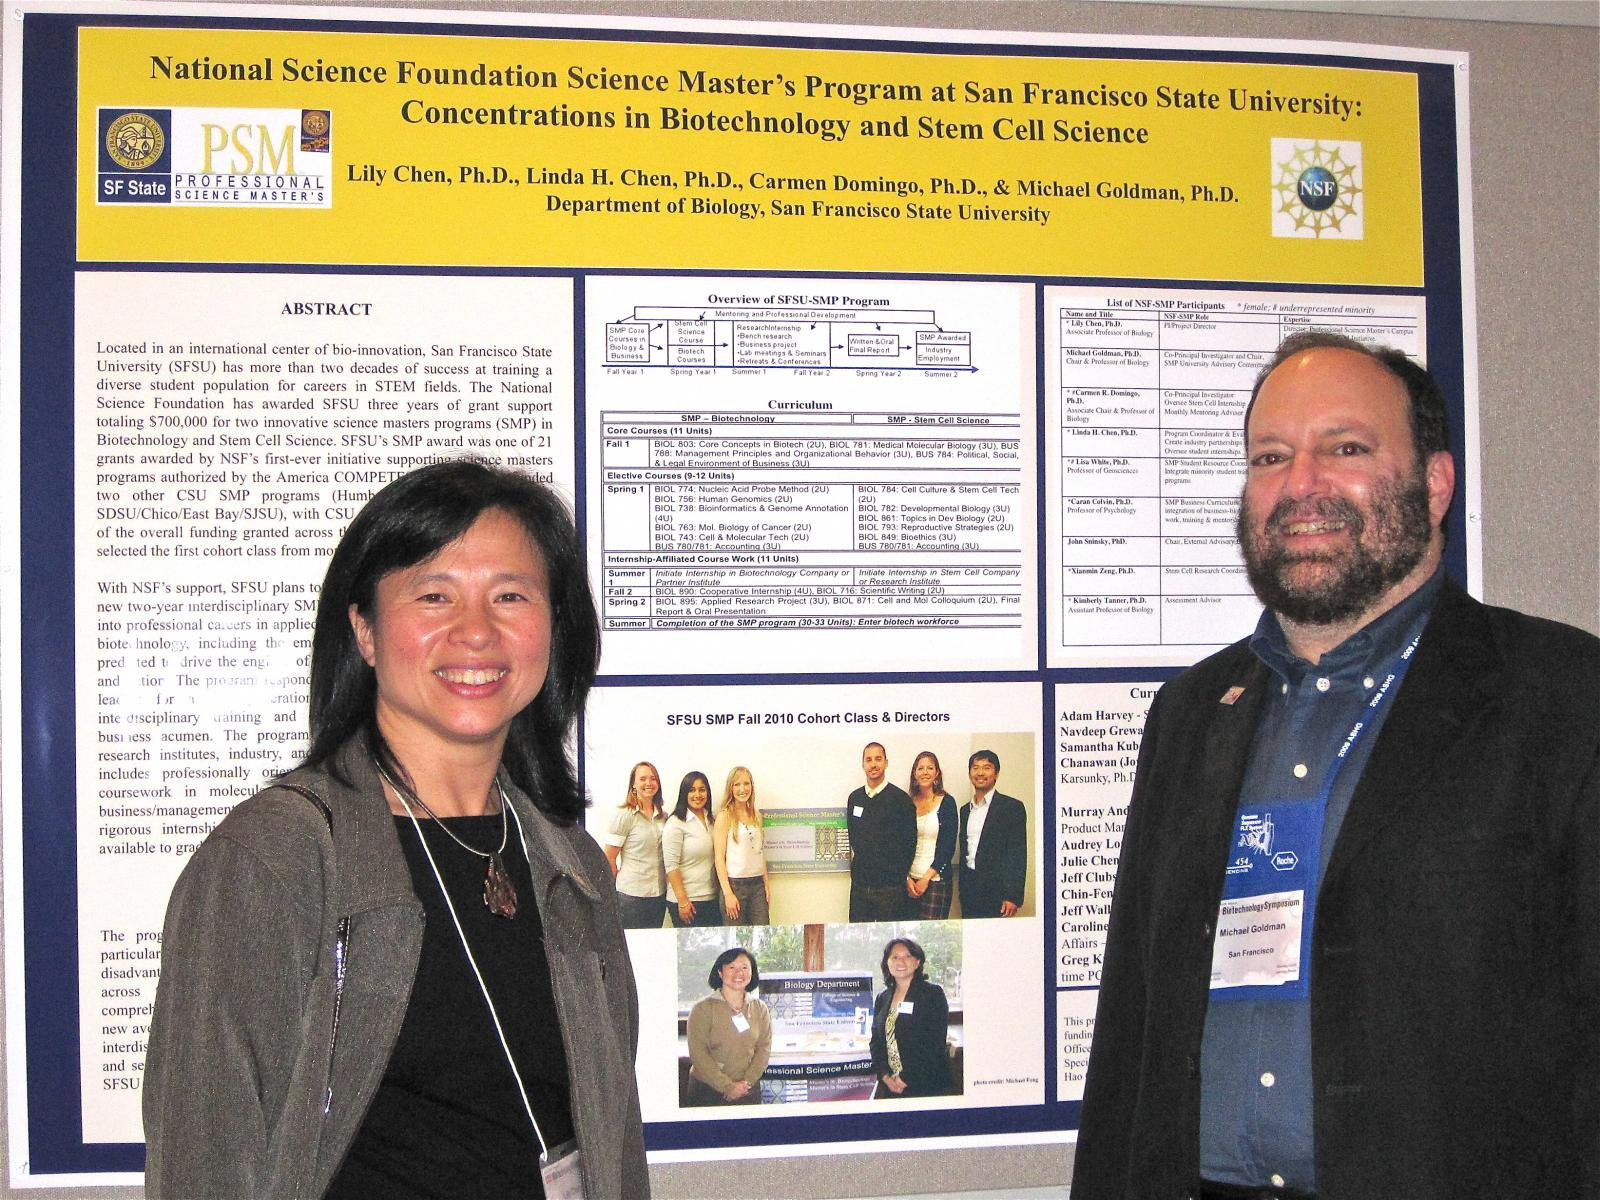 Dr. Lily Chen and Dr. Michael Goldman in front of a program poster